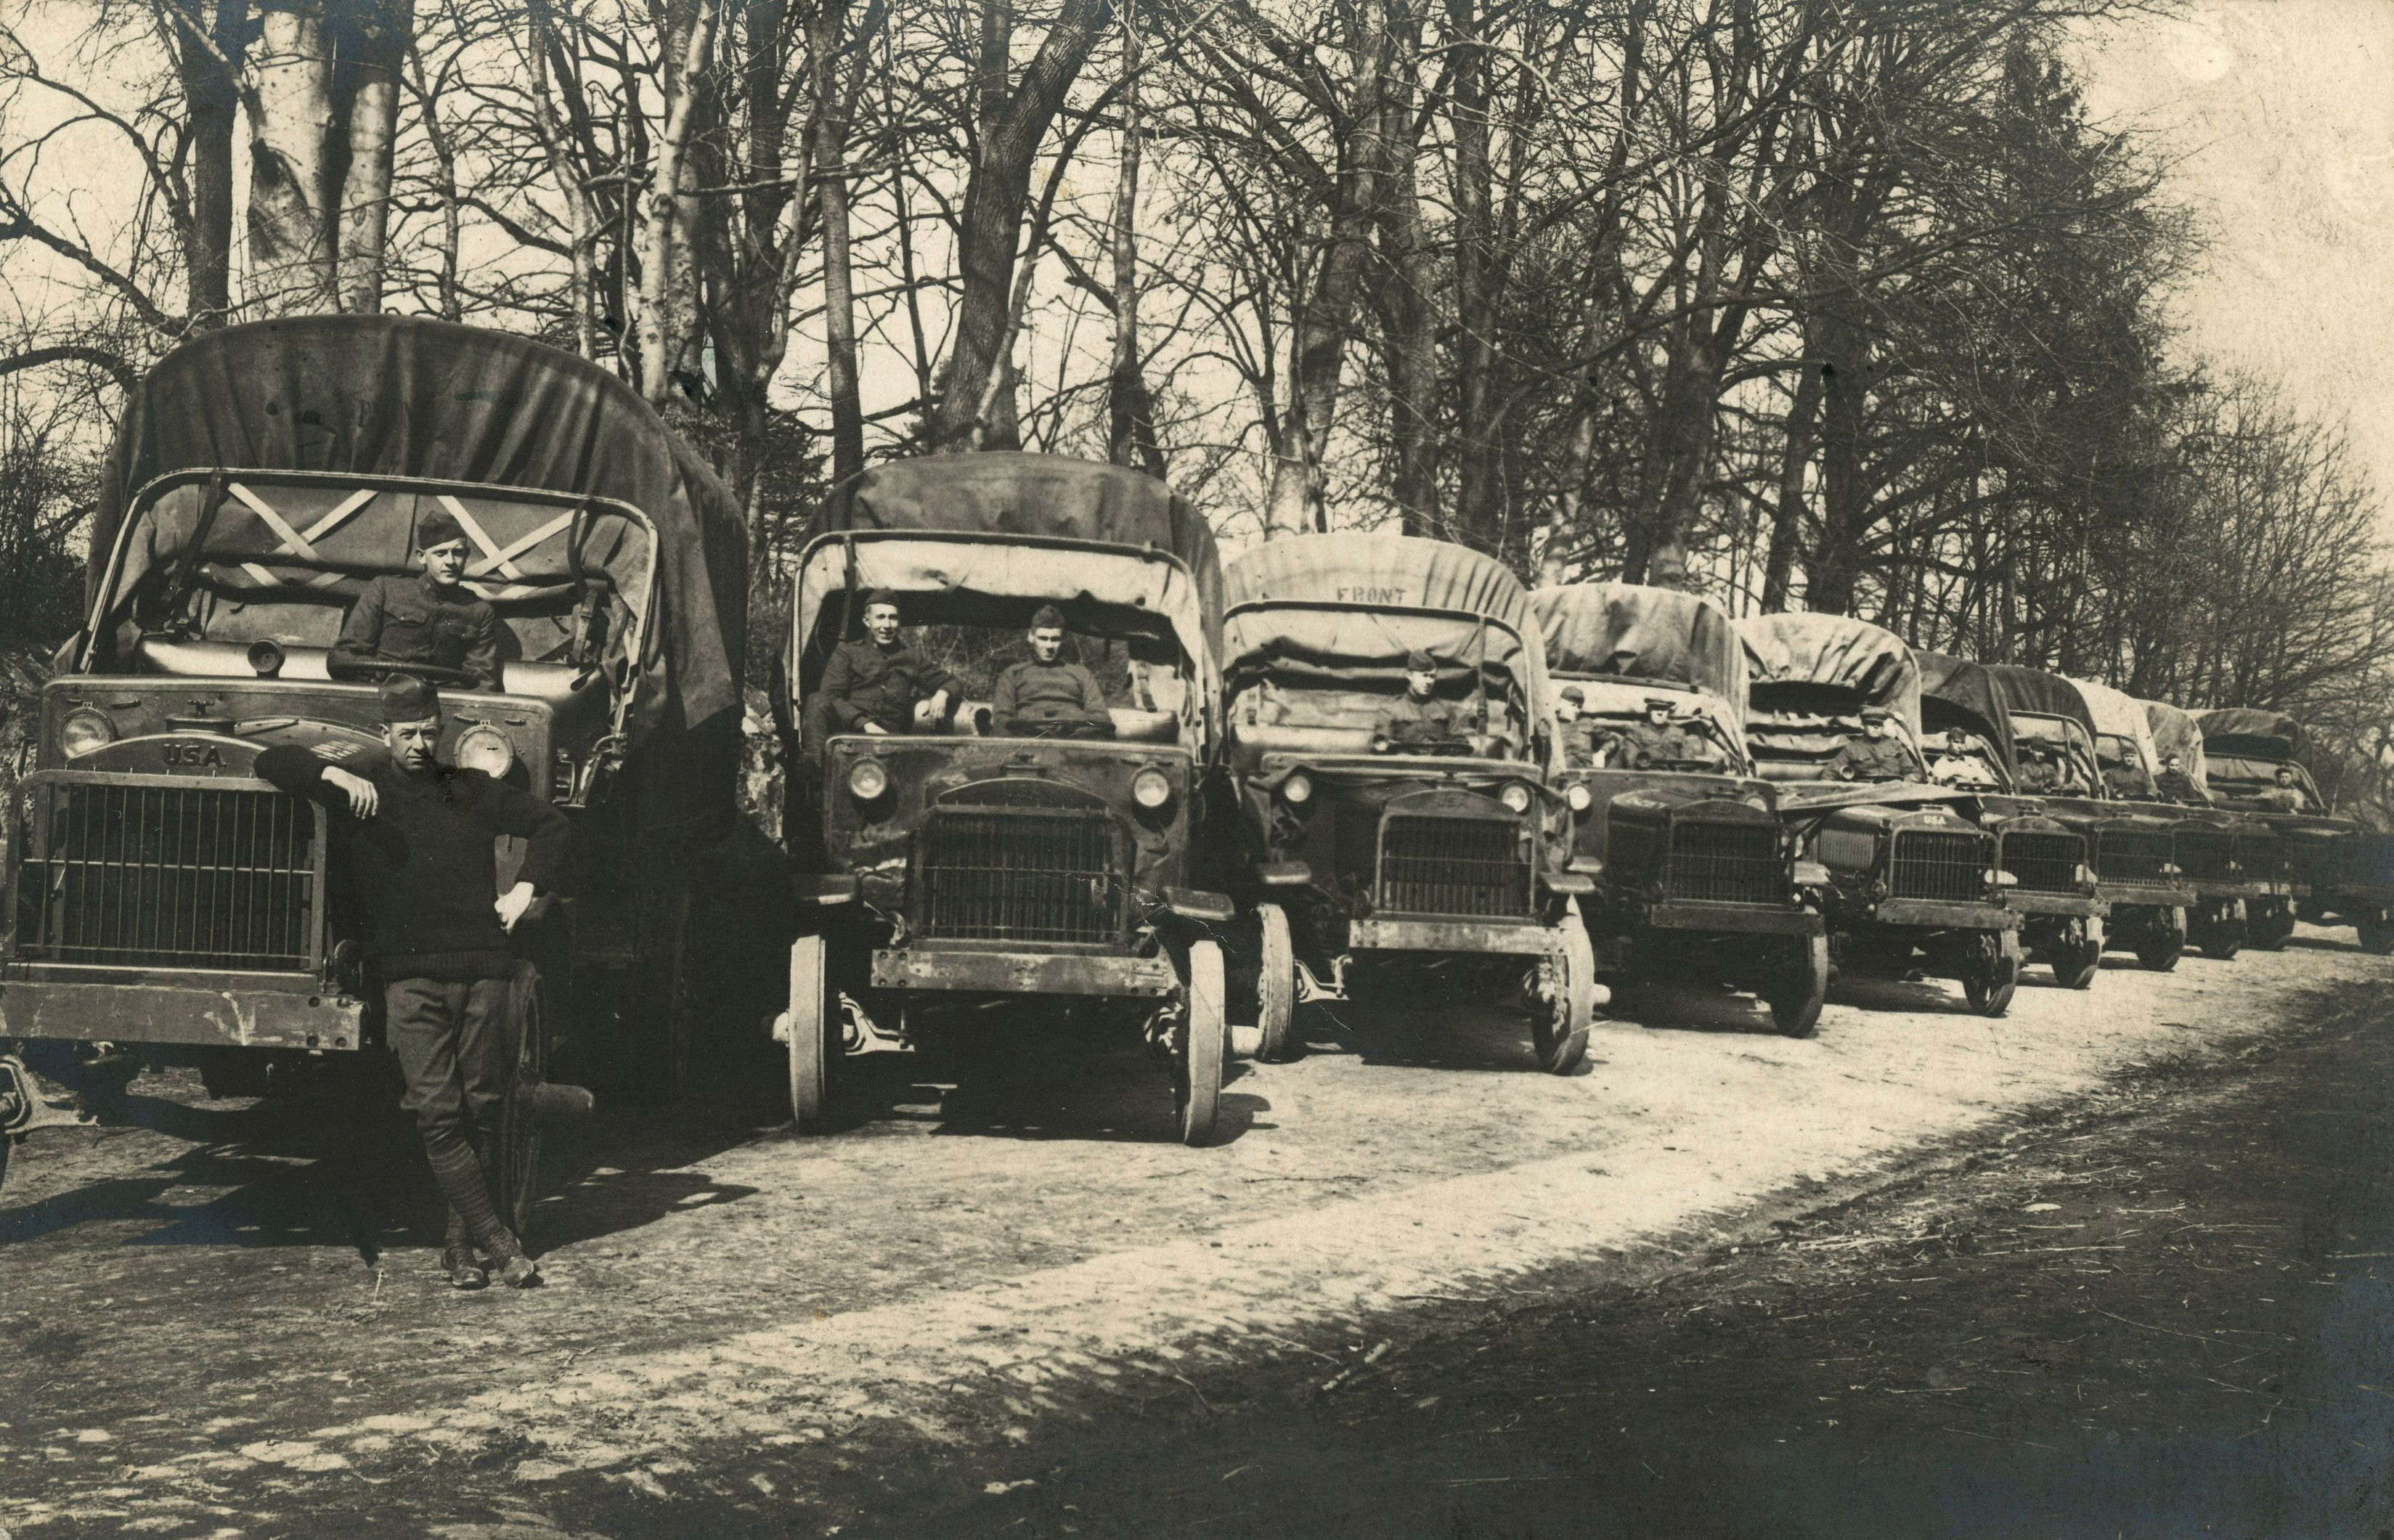 How a 1919 Army Truck Convoy Across the U.S. Helped Win WWII